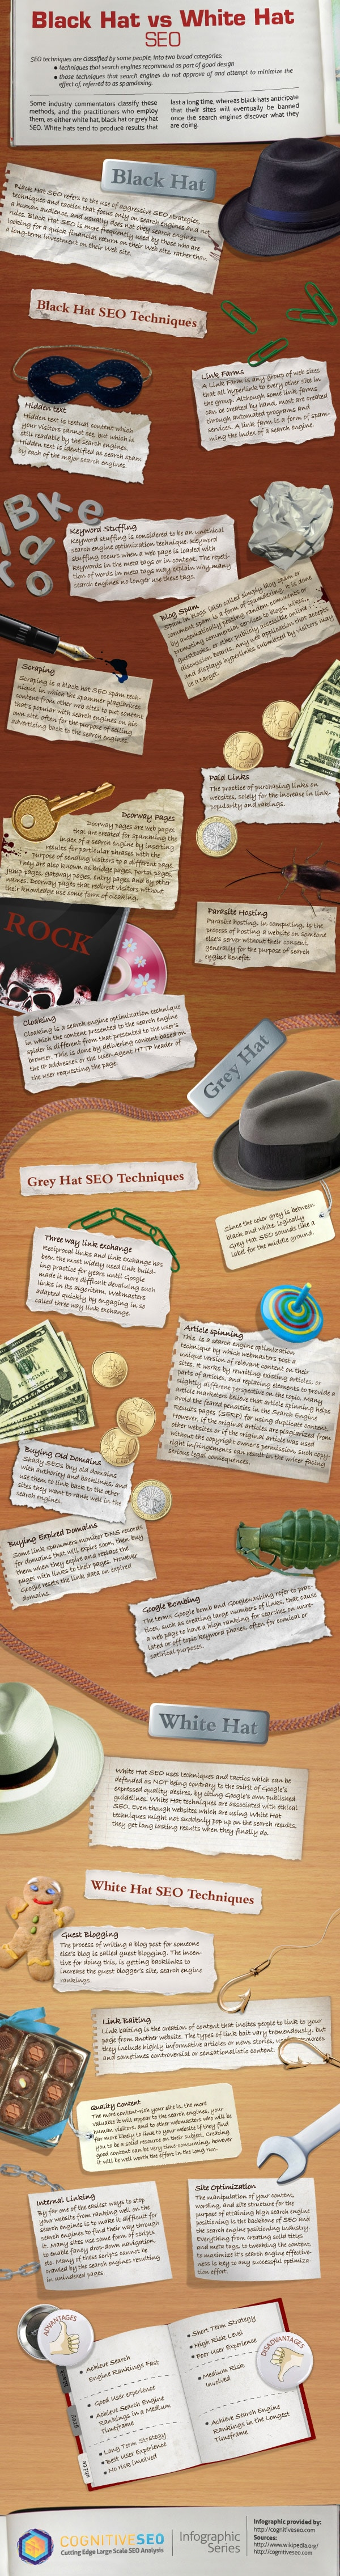 SEO Tactics: A Comparison Of Black, Grey & White Hat SEO [Infographic]